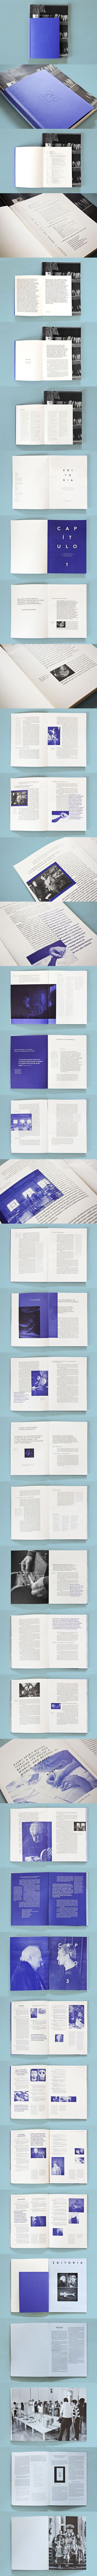 Behance- Exhibtion Catalog.   Colors and photographs? Interesting type options? Too fancy/designy for my mom?